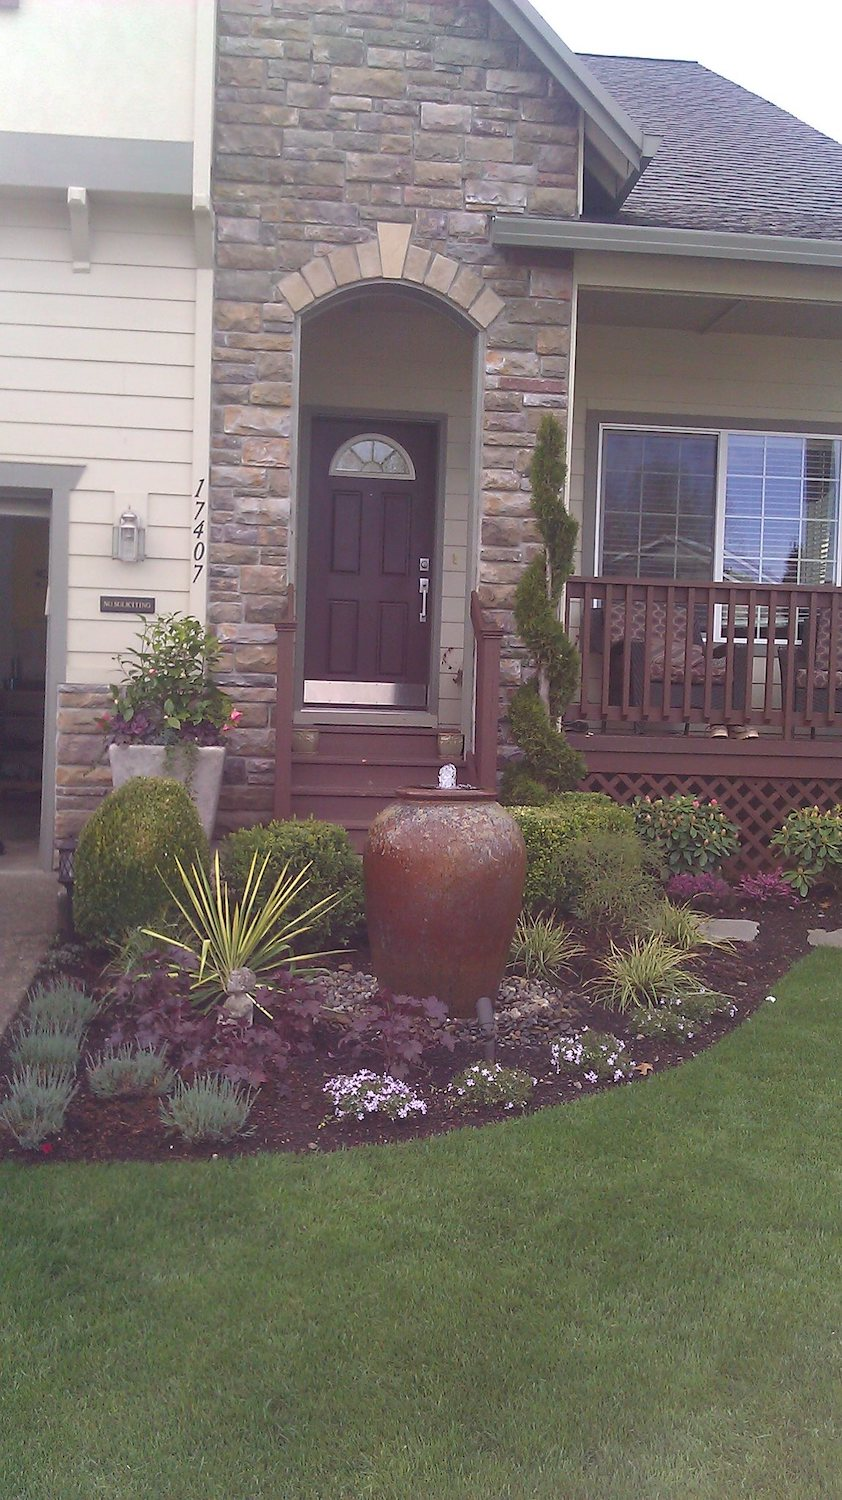 How To Transform Your Front Yard With Curb Appeal Landscaping Premier Residential And Commercial Landscaping Creative Landcare